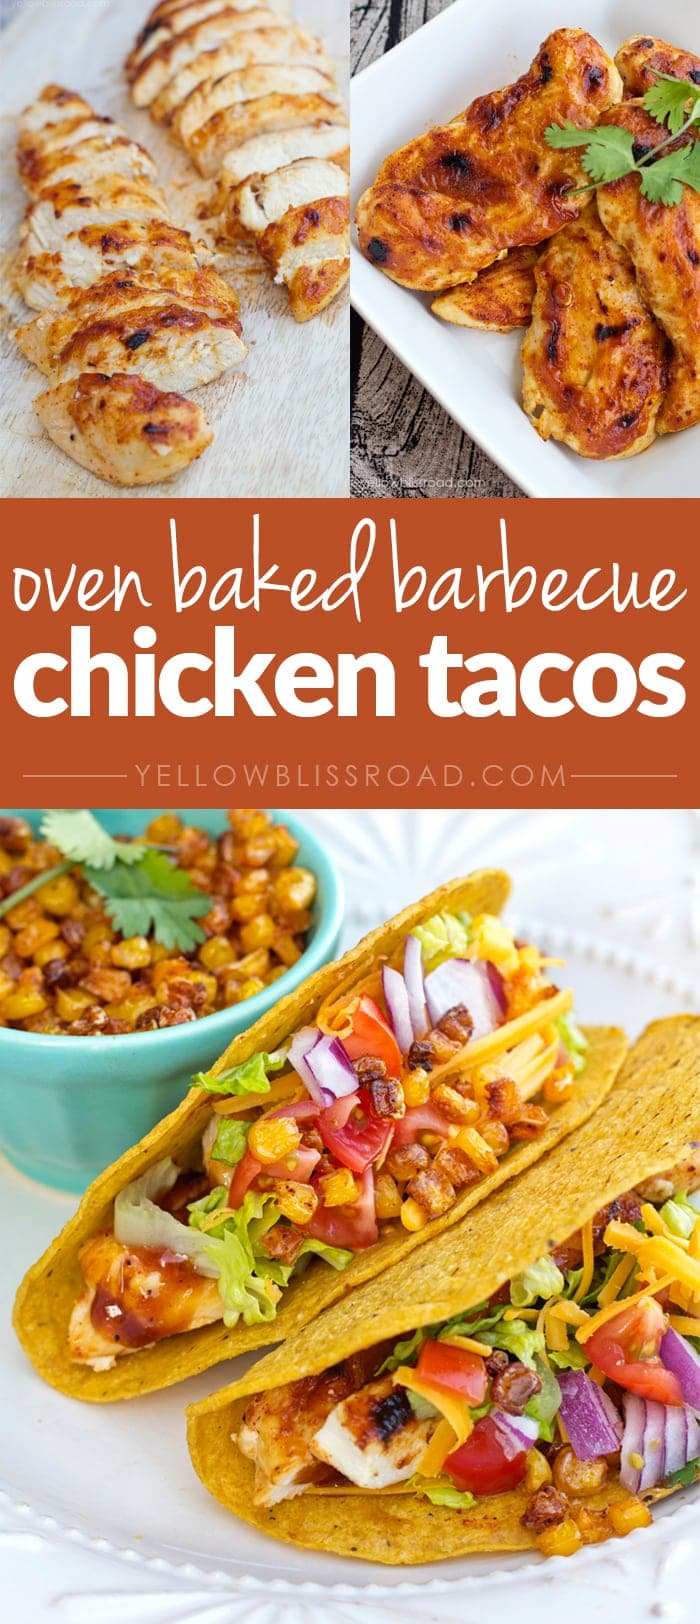 Oven Baked Barbecue Chicken Tacos with Oven Roasted Corn